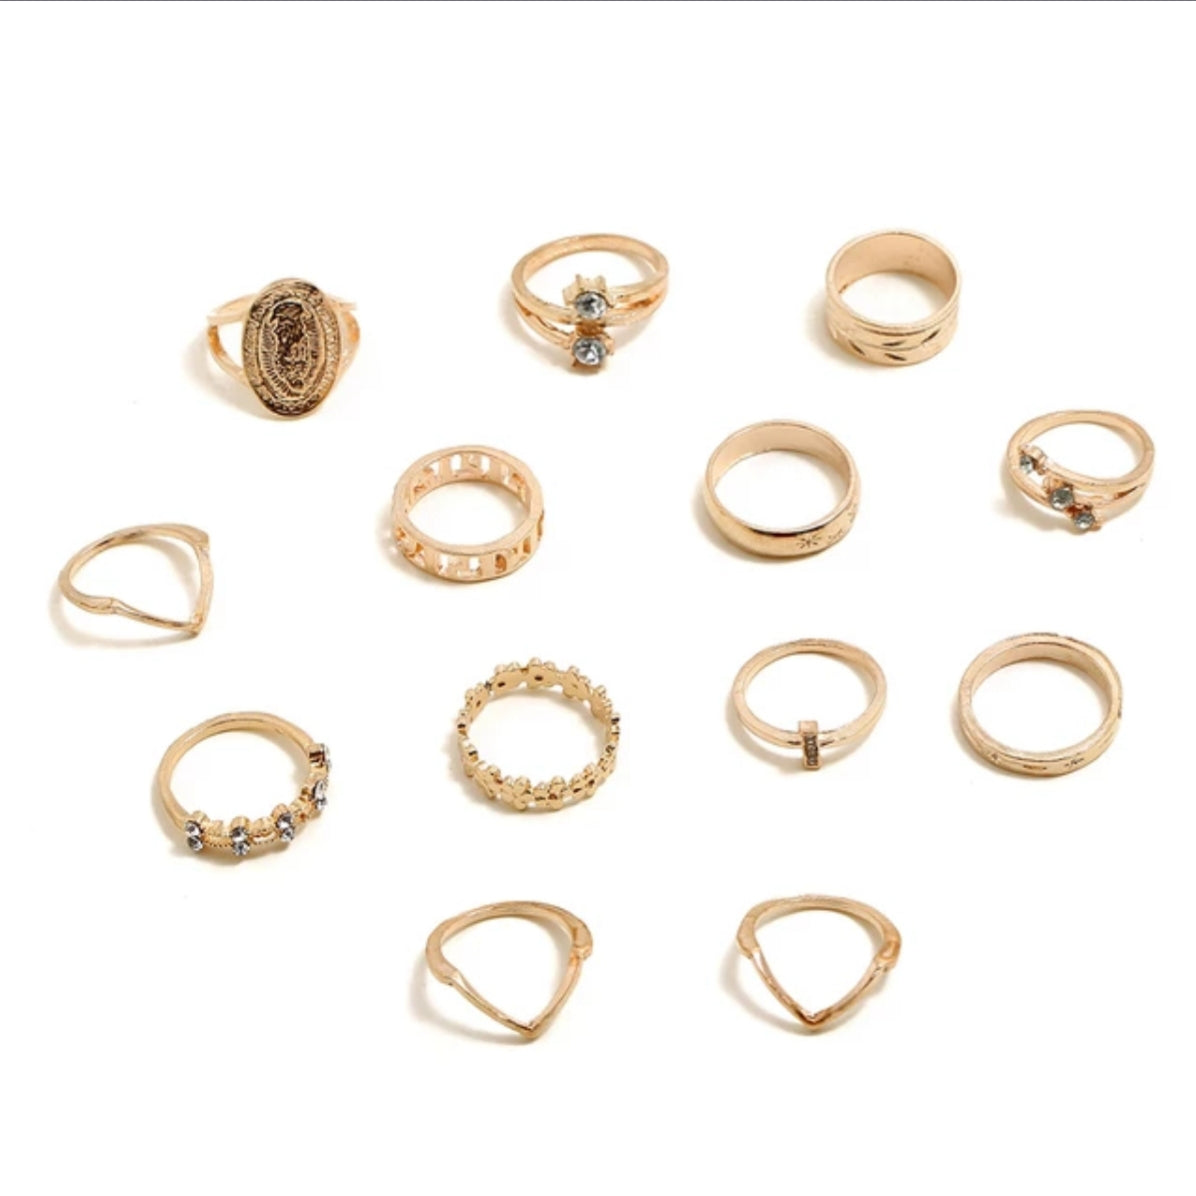 Gold ring set, mother Mary ring set